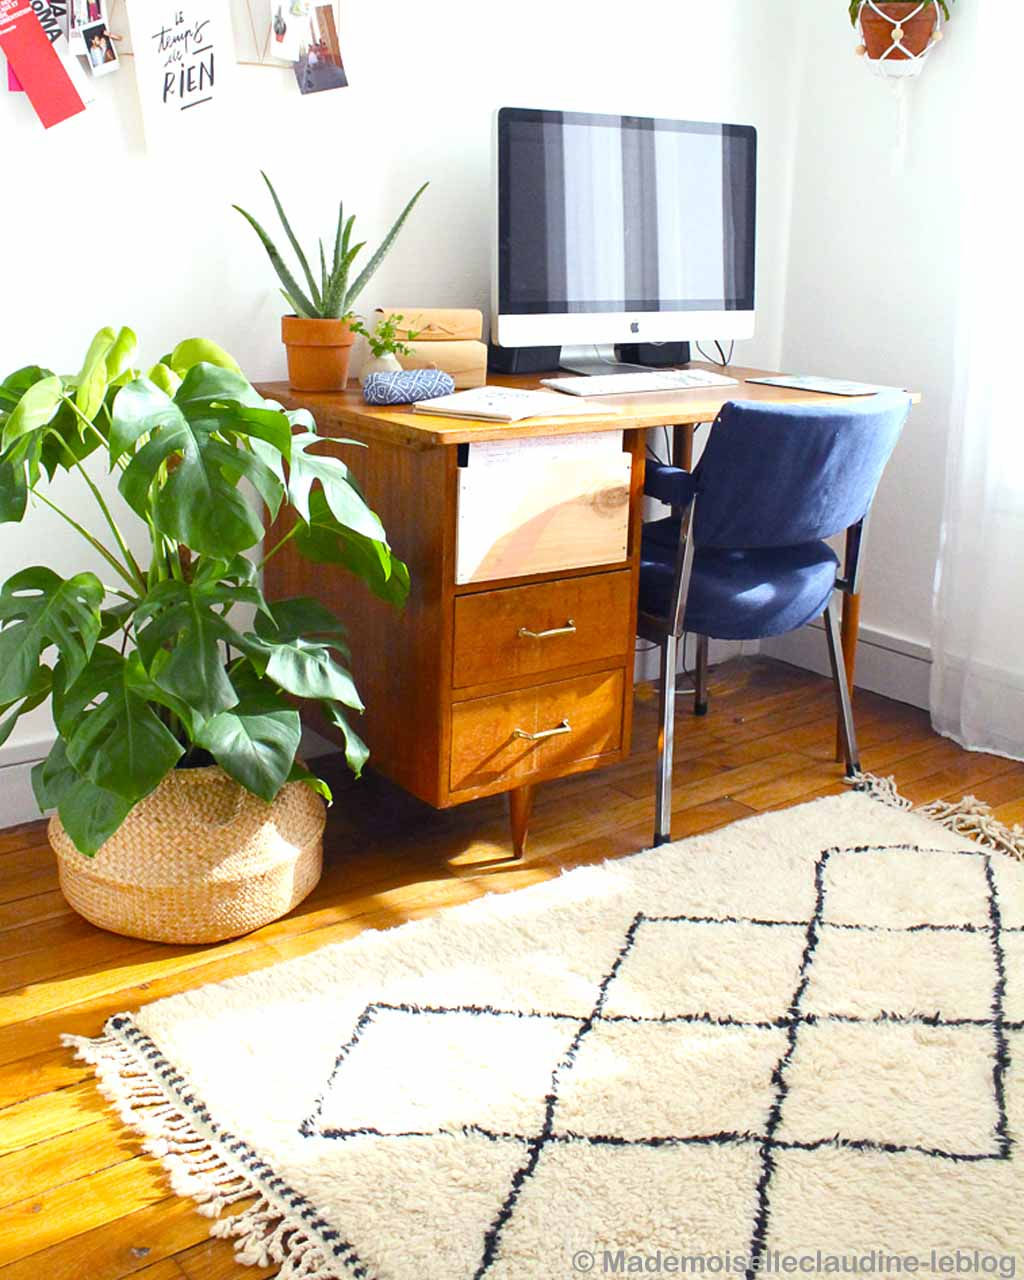 computer table with apple system oriental rugs